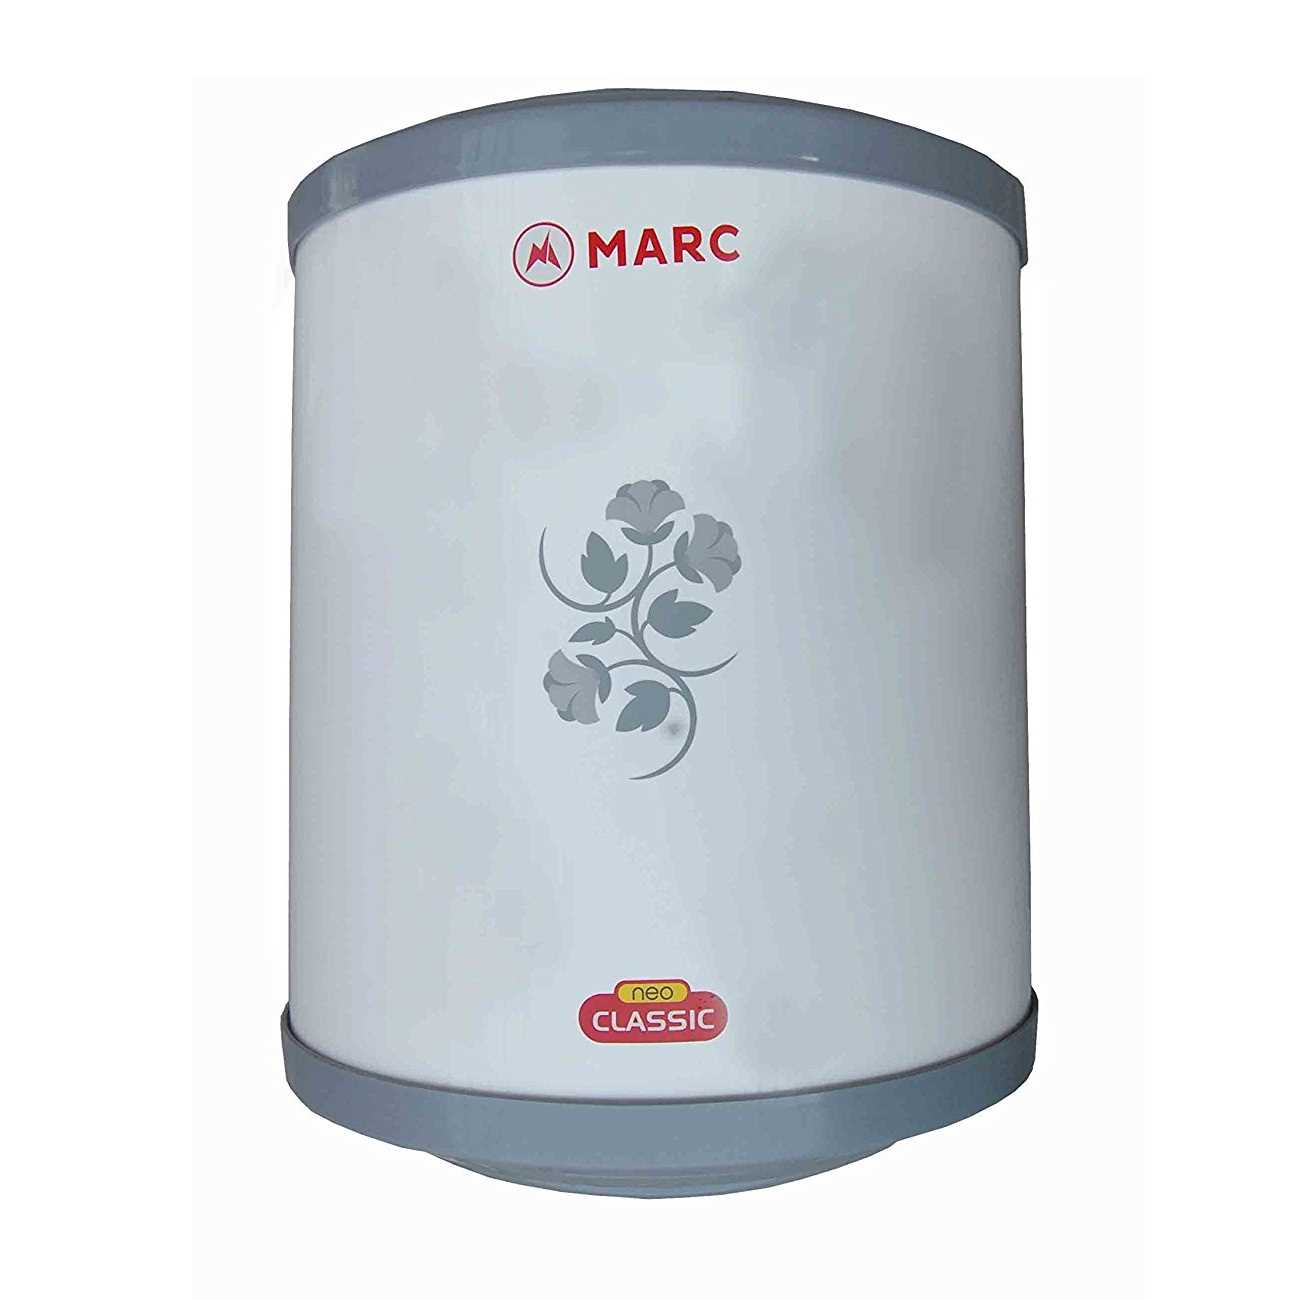 Marc Neo Classic 15 Litre Storage Water Heater